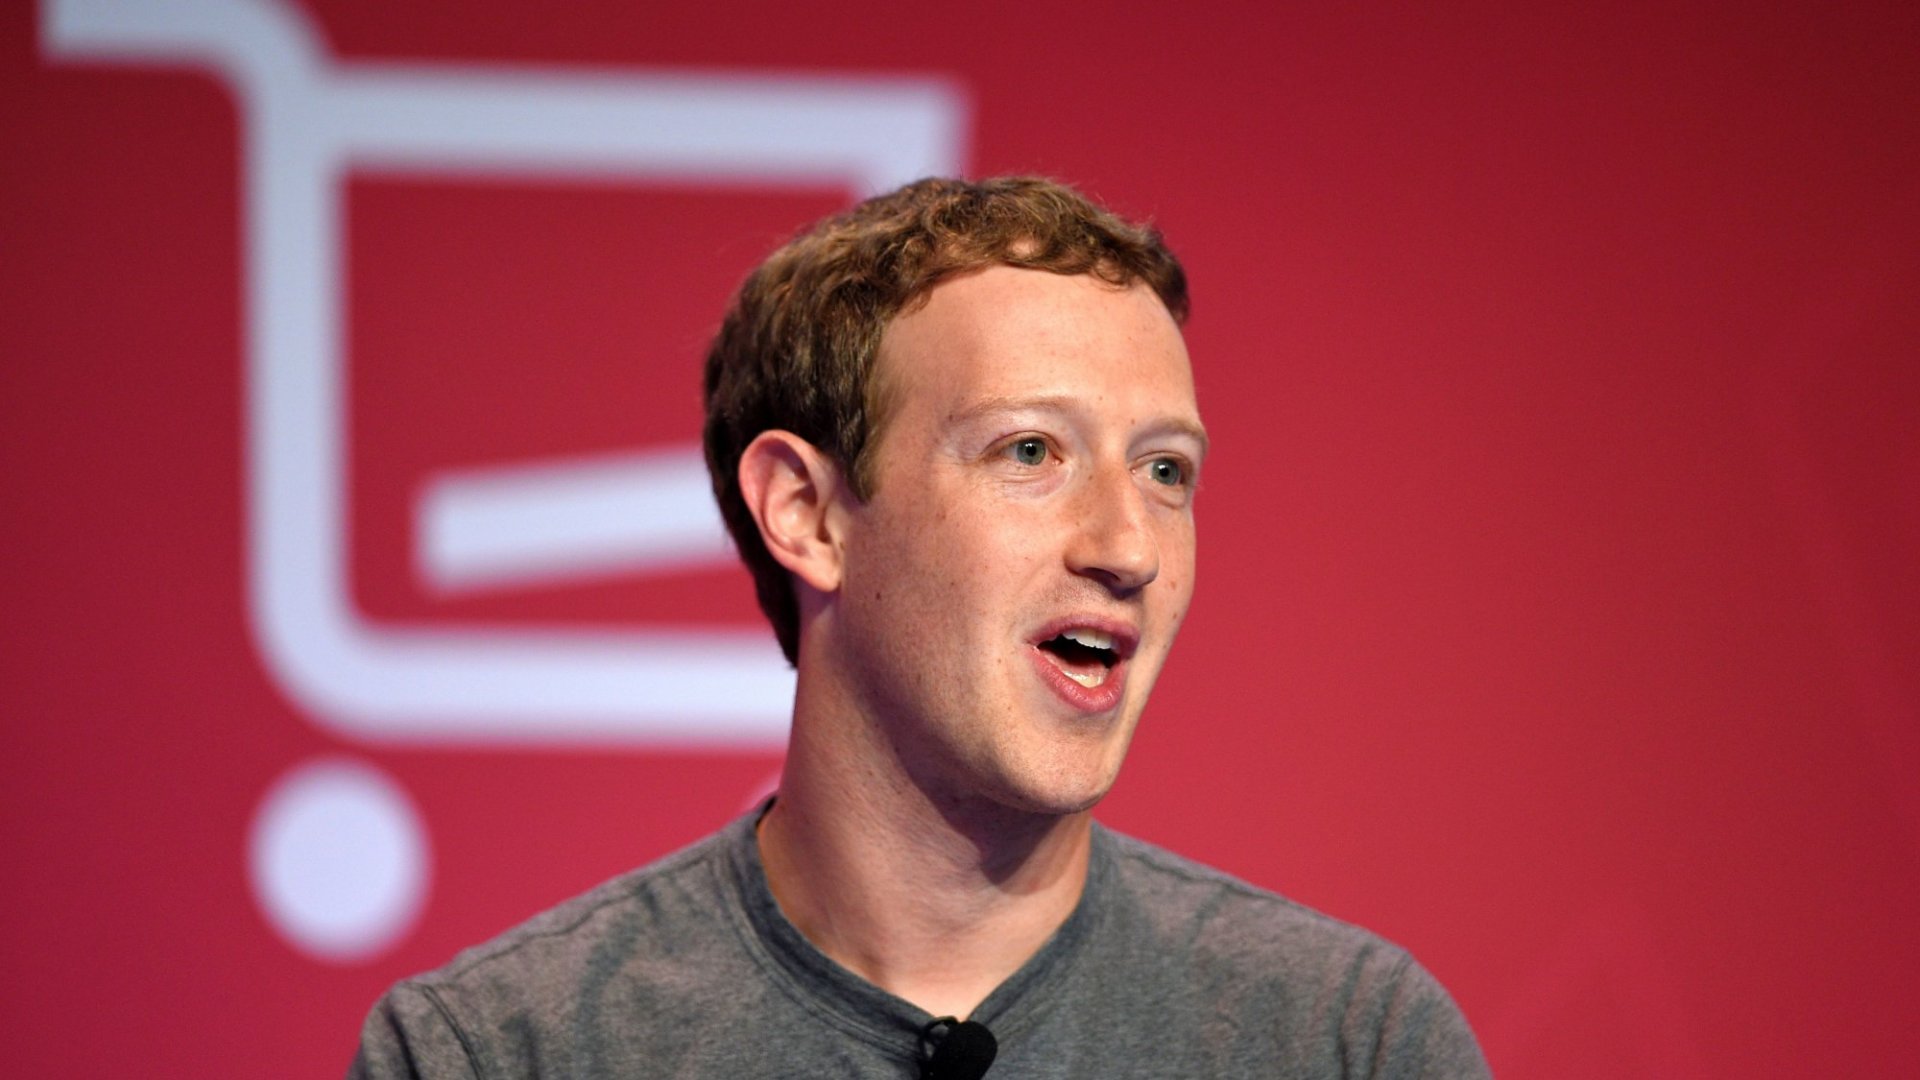 Facebook Reports Stronger-Than-Expected First Quarter Results